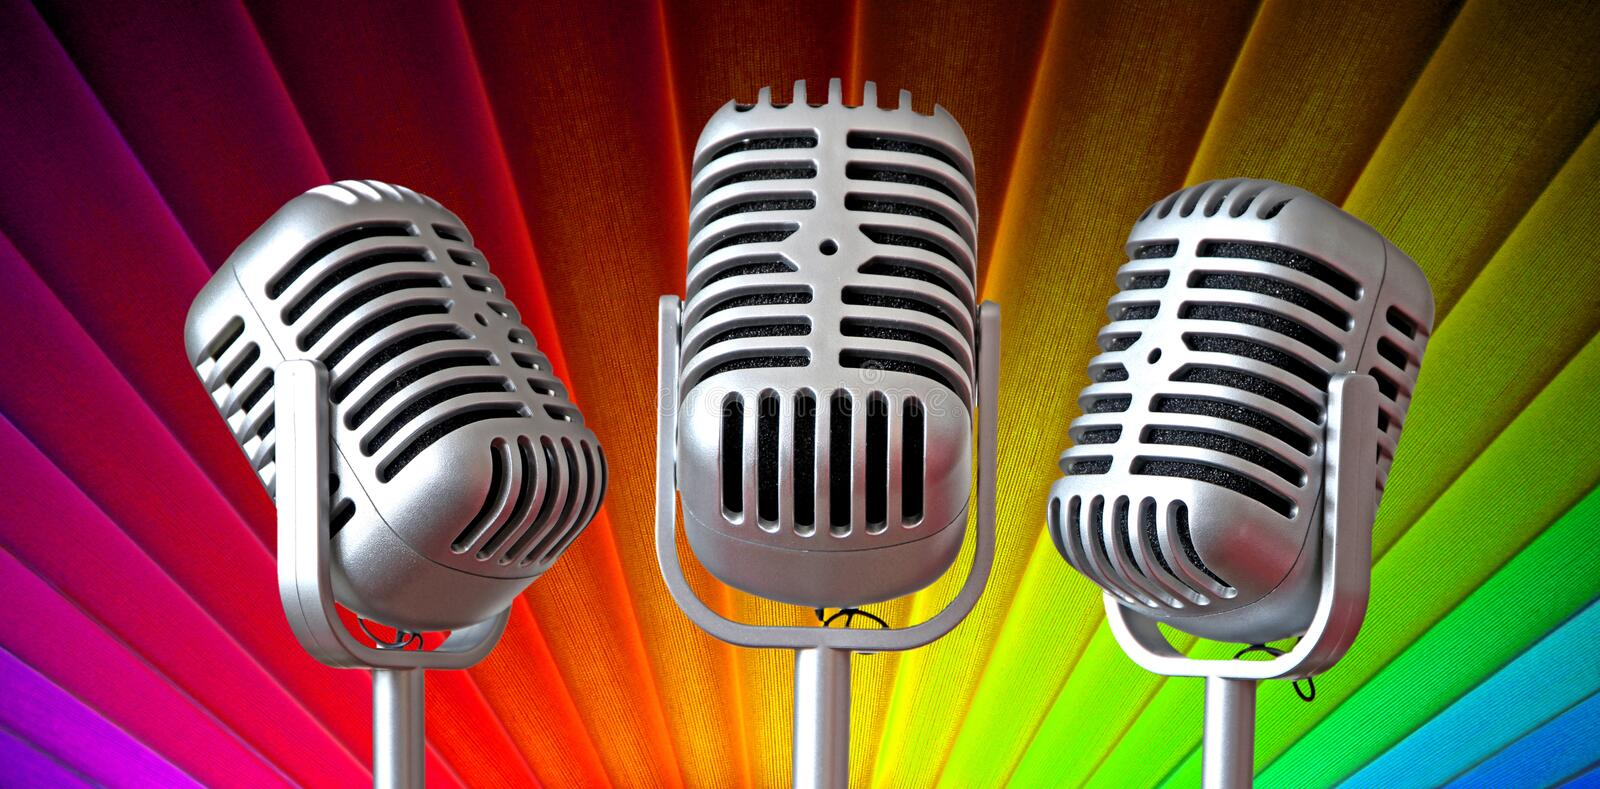 Vintage art deco mic trio royalty free stock images